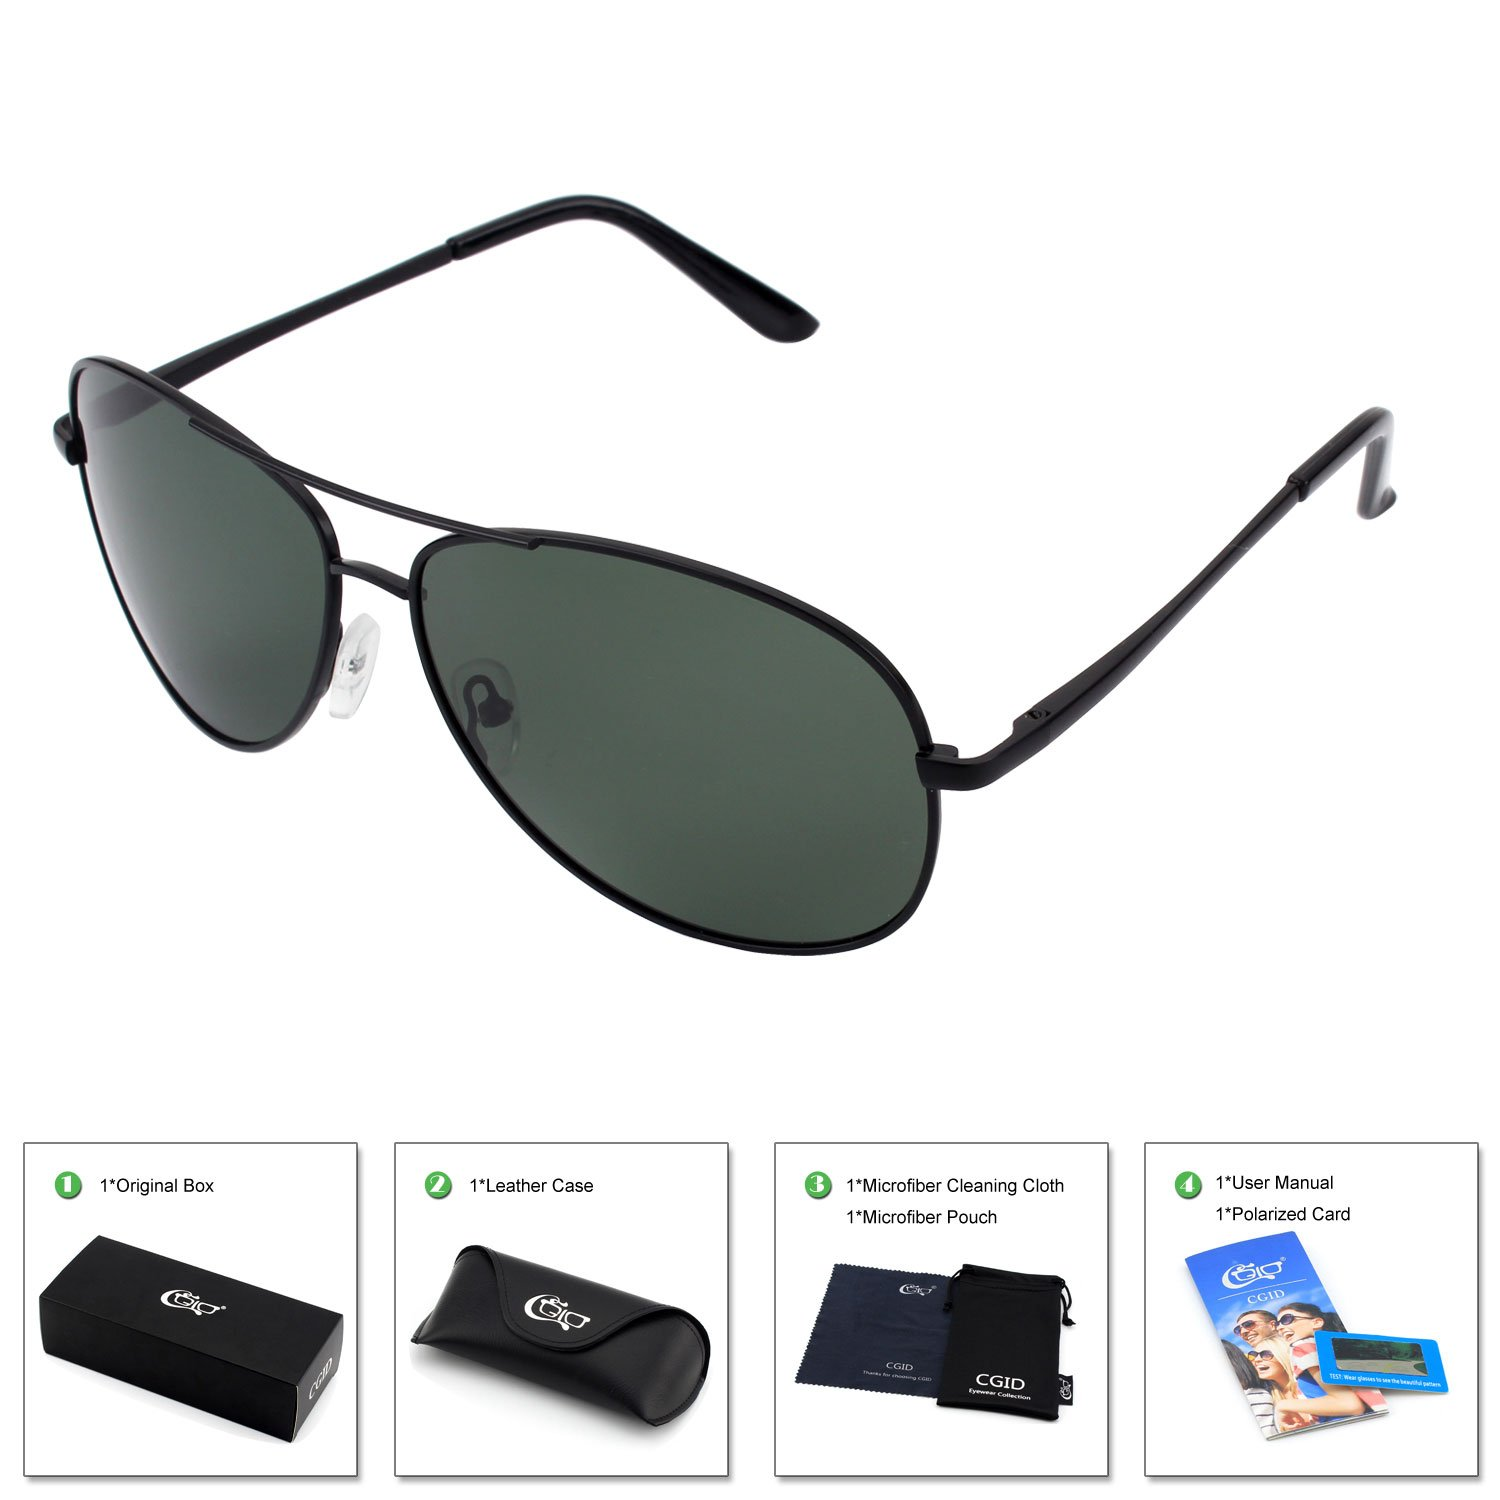 CGID GA61 Premium Al-Mg Pilot Polarized Sunglasses UV400 Mirror for Men Women US17MJ161-1